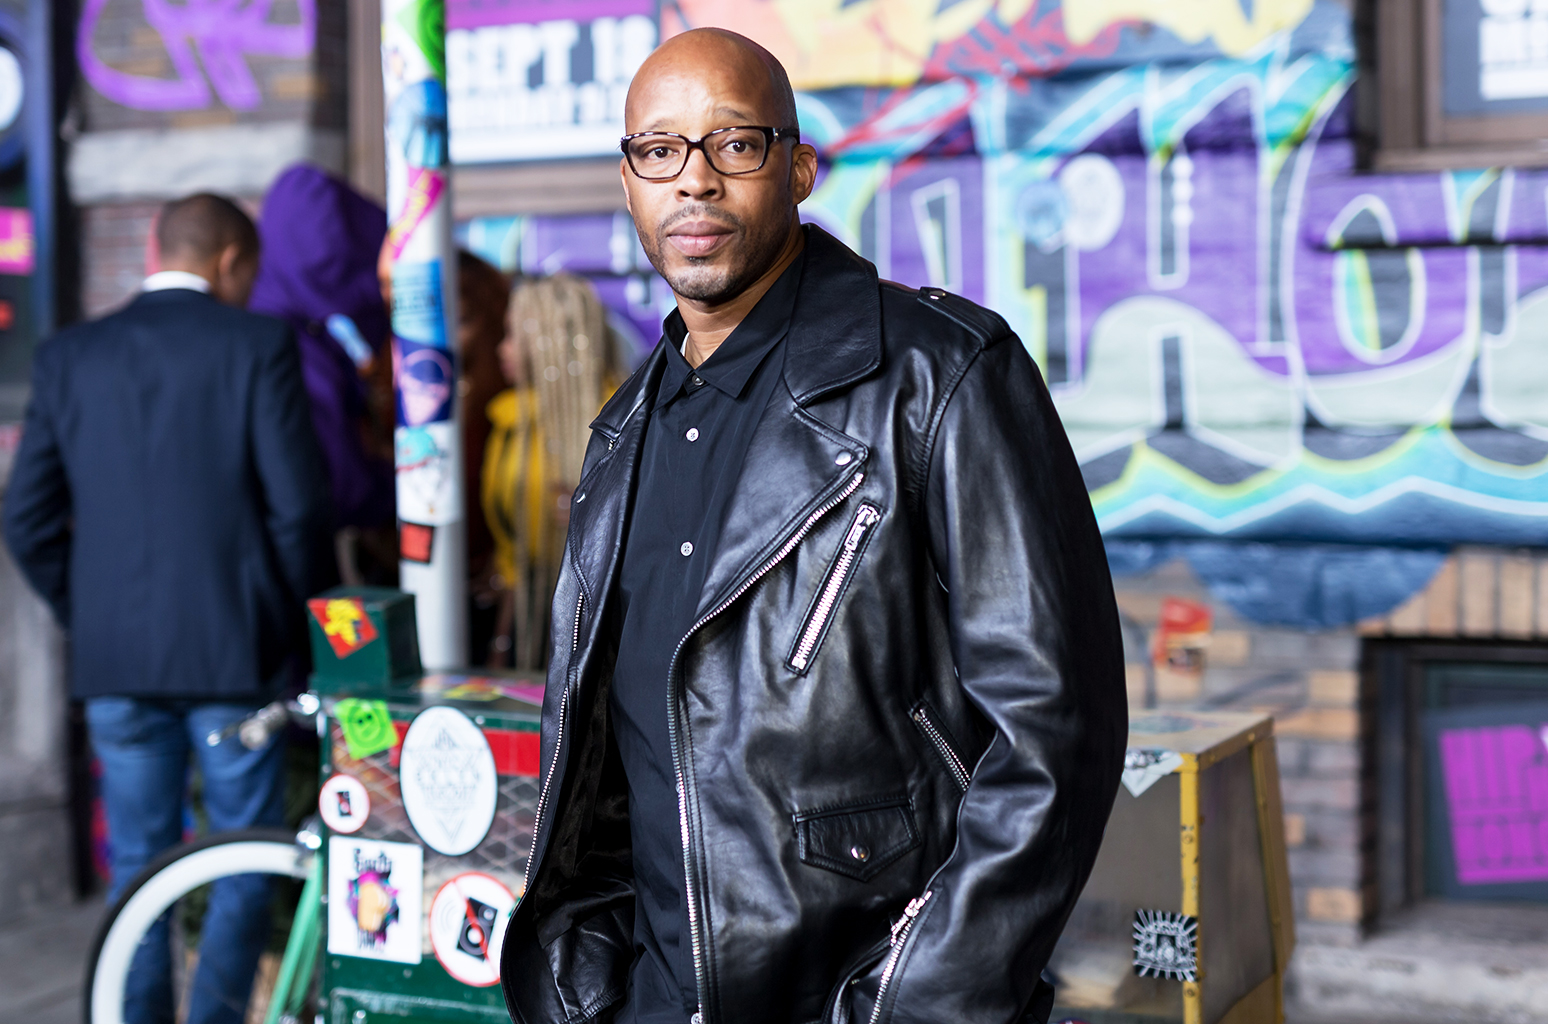 Warren-G-hip-hop-awards-2018-billboard-1548.jpg